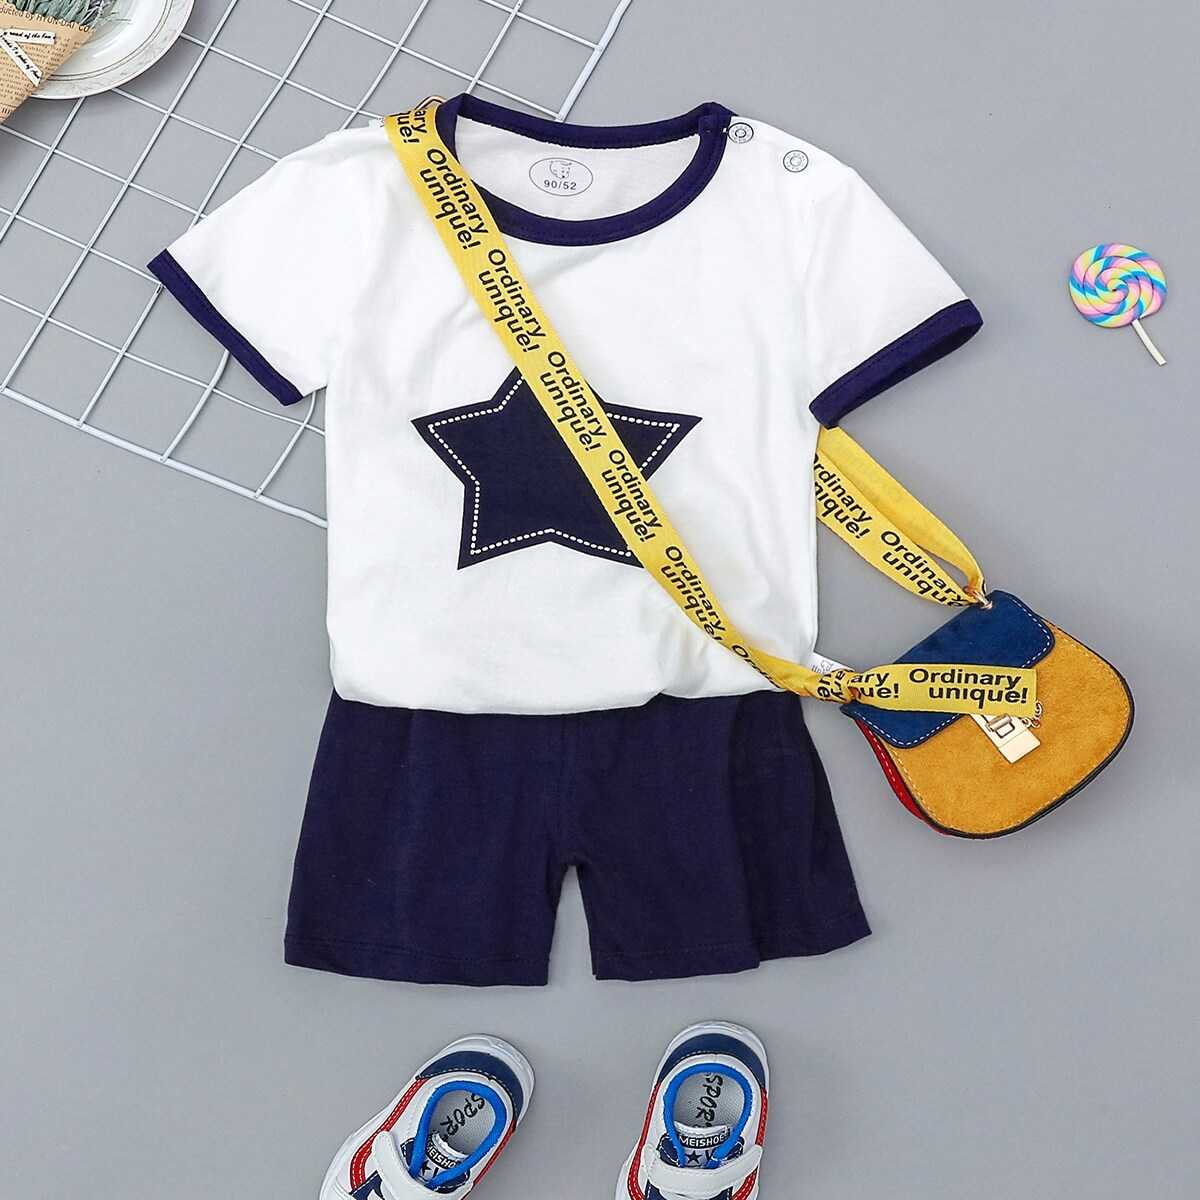 Toddler Boys Contrast Binding Patched Tee With Shorts Without Bag - Shein - GOOFASH